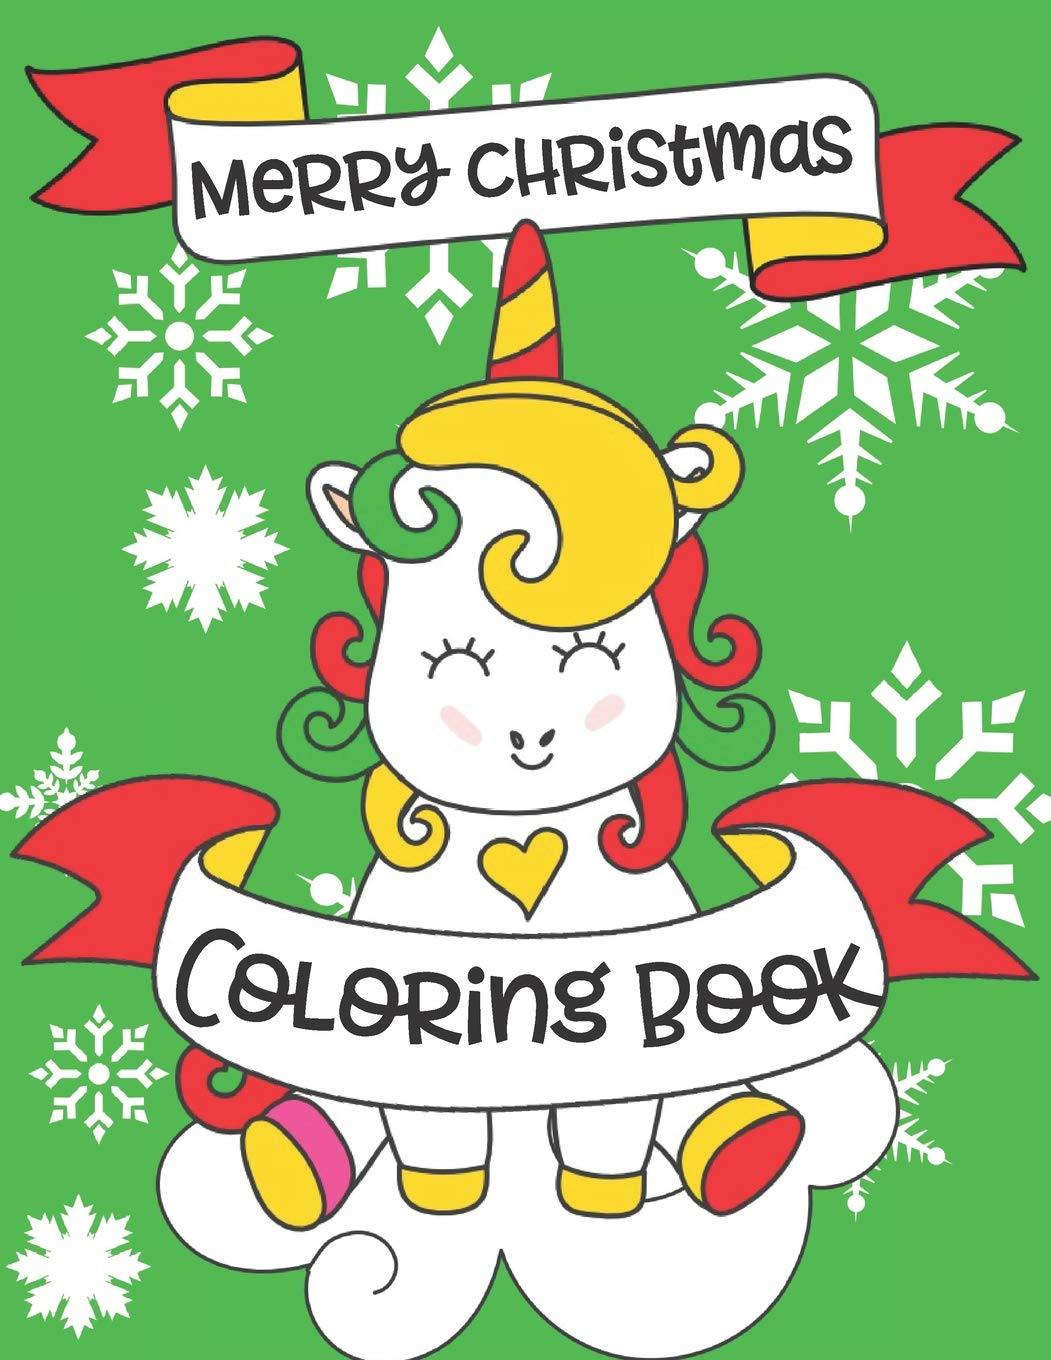 Merry Christmas Coloring Book A Christmas Unicorn Coloring